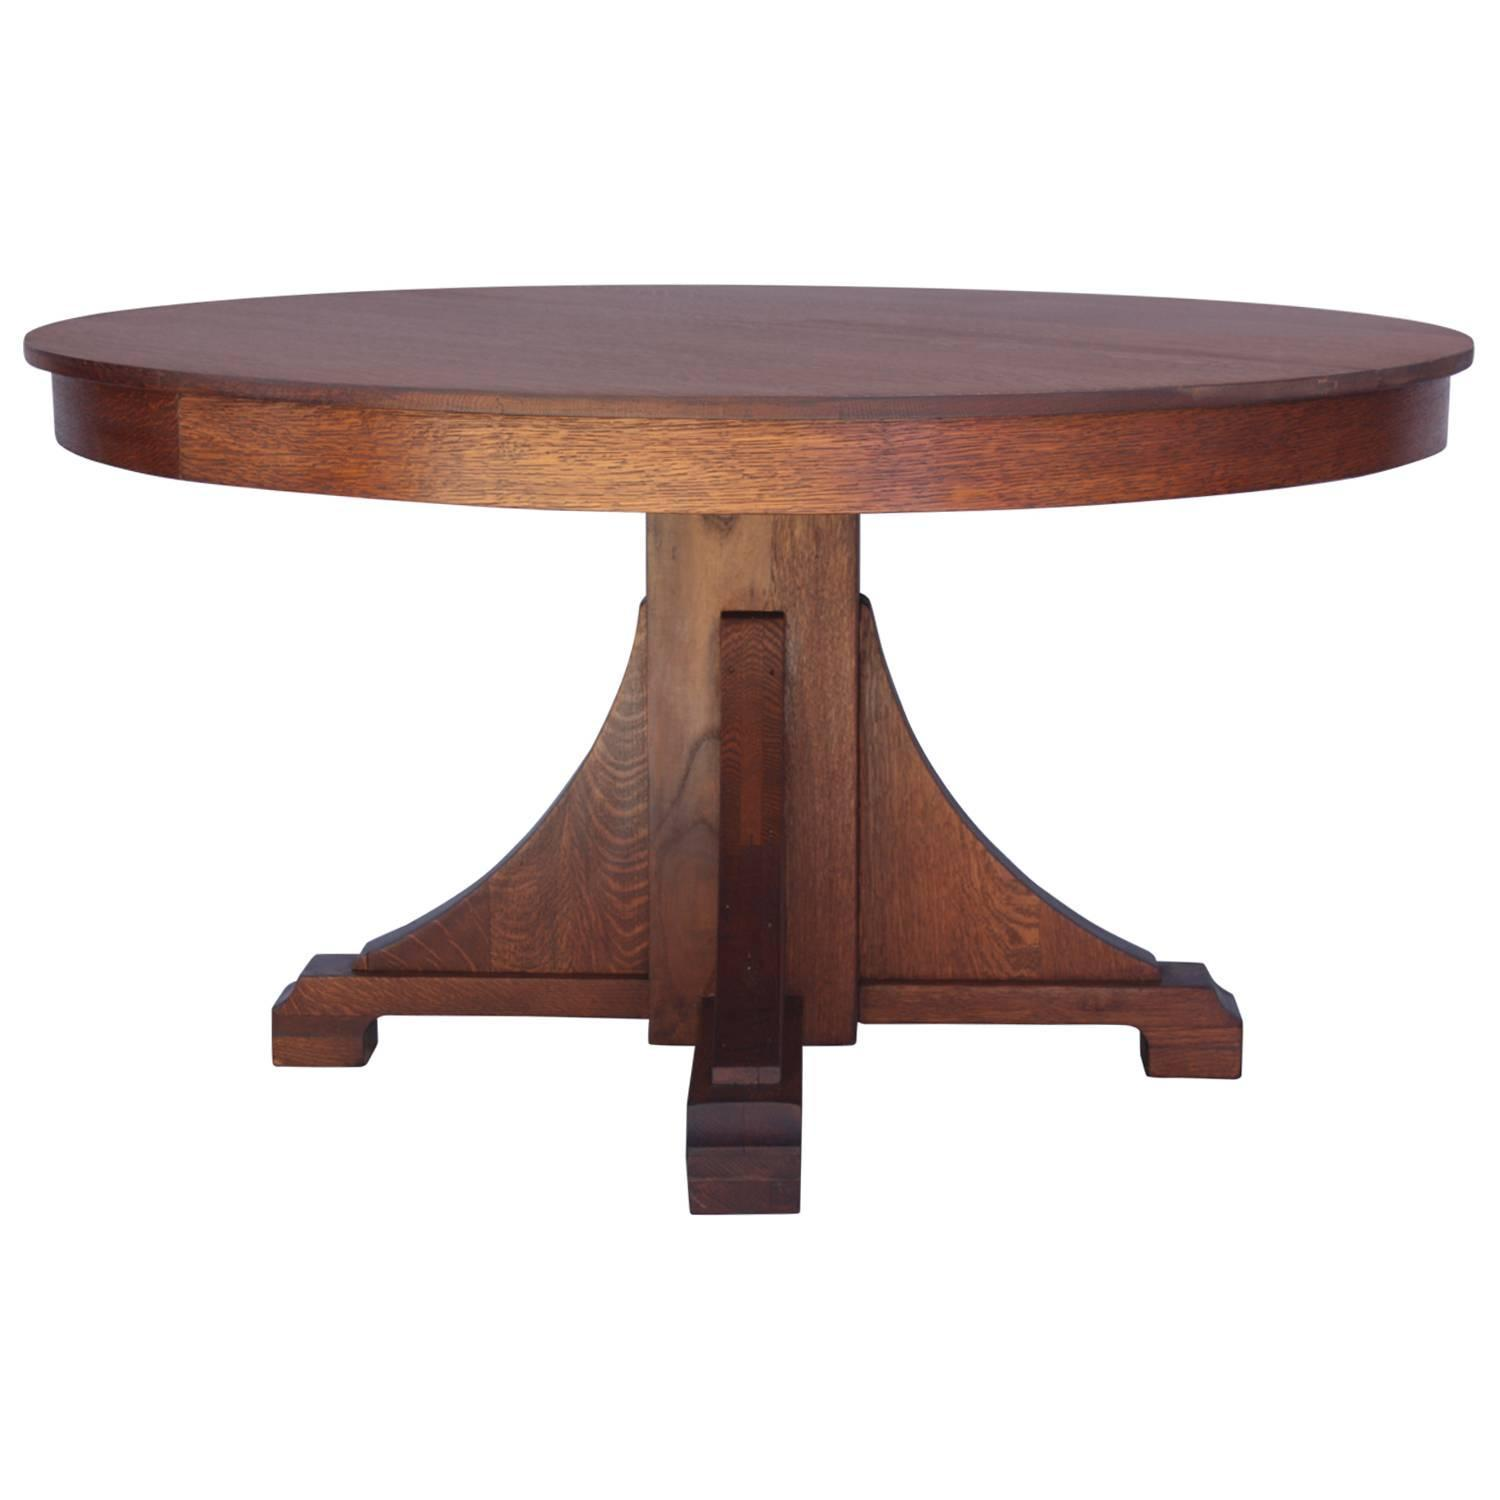 1910 Arts And Crafts Round Oak Dining Table At 1stdibs